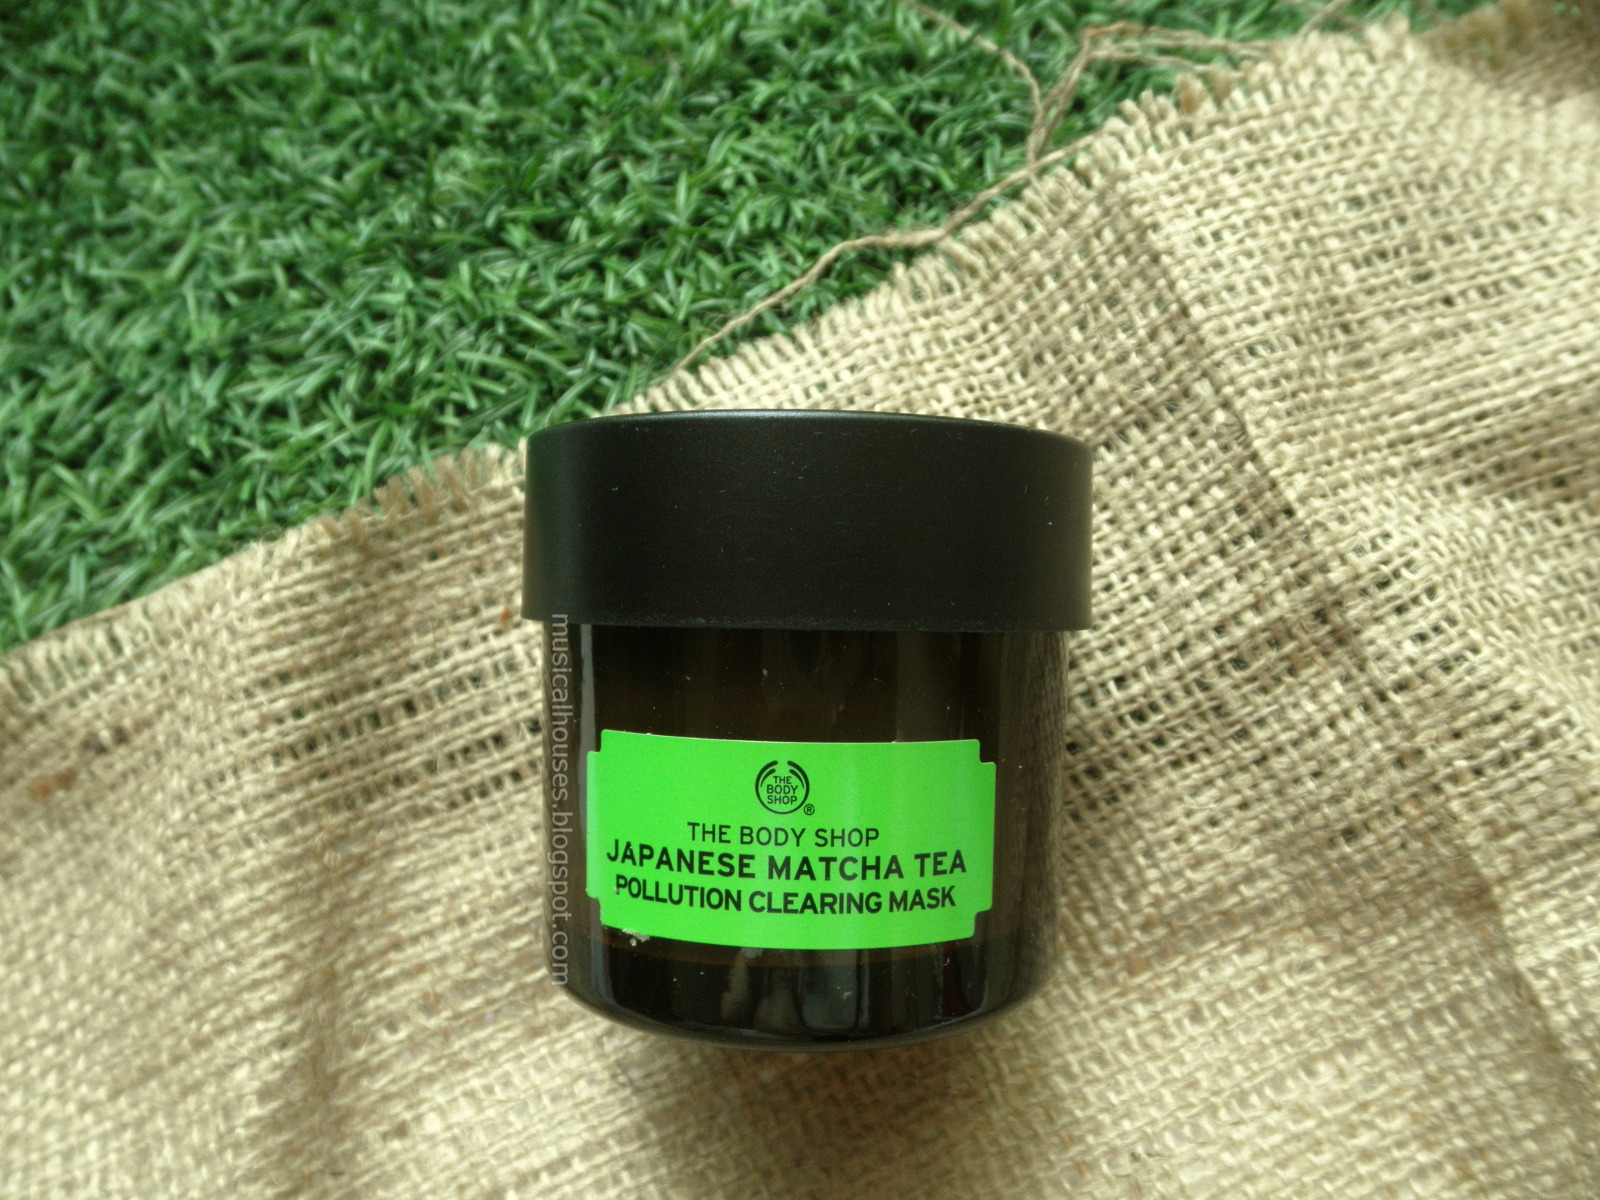 The Body Shop Japanese Matcha Tea Mask Review and